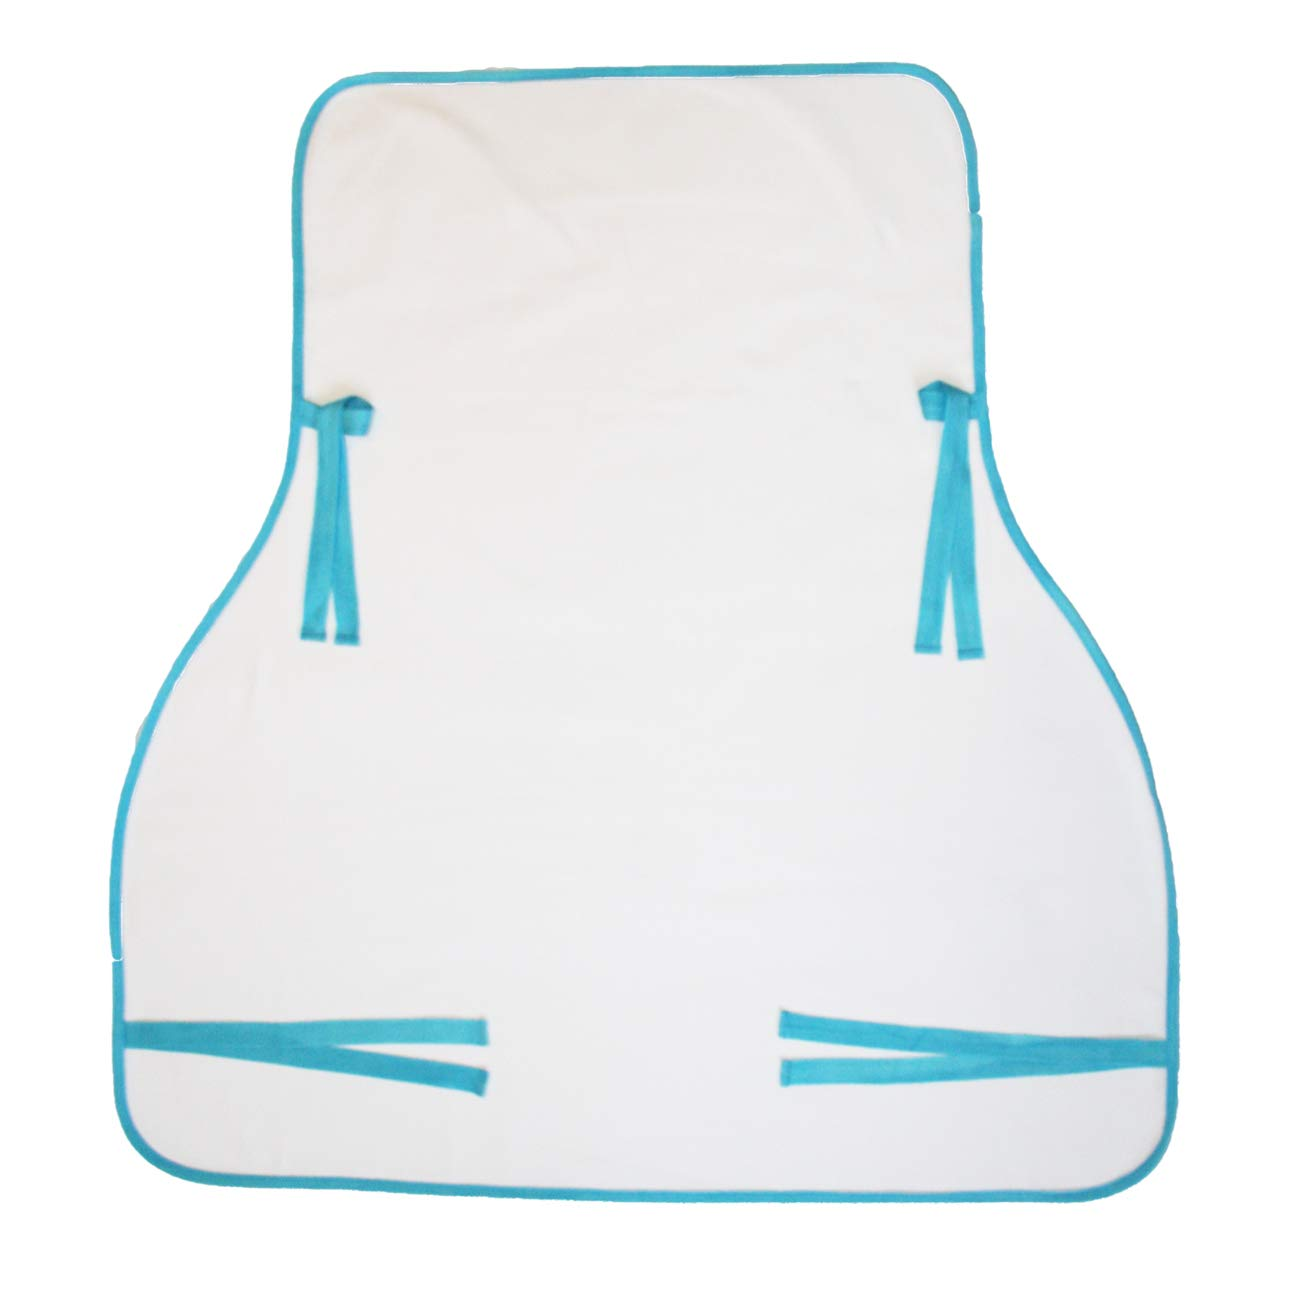 Rain or Shine Kids UPF 45+ Suncover for Baby (Turquoise Blue)